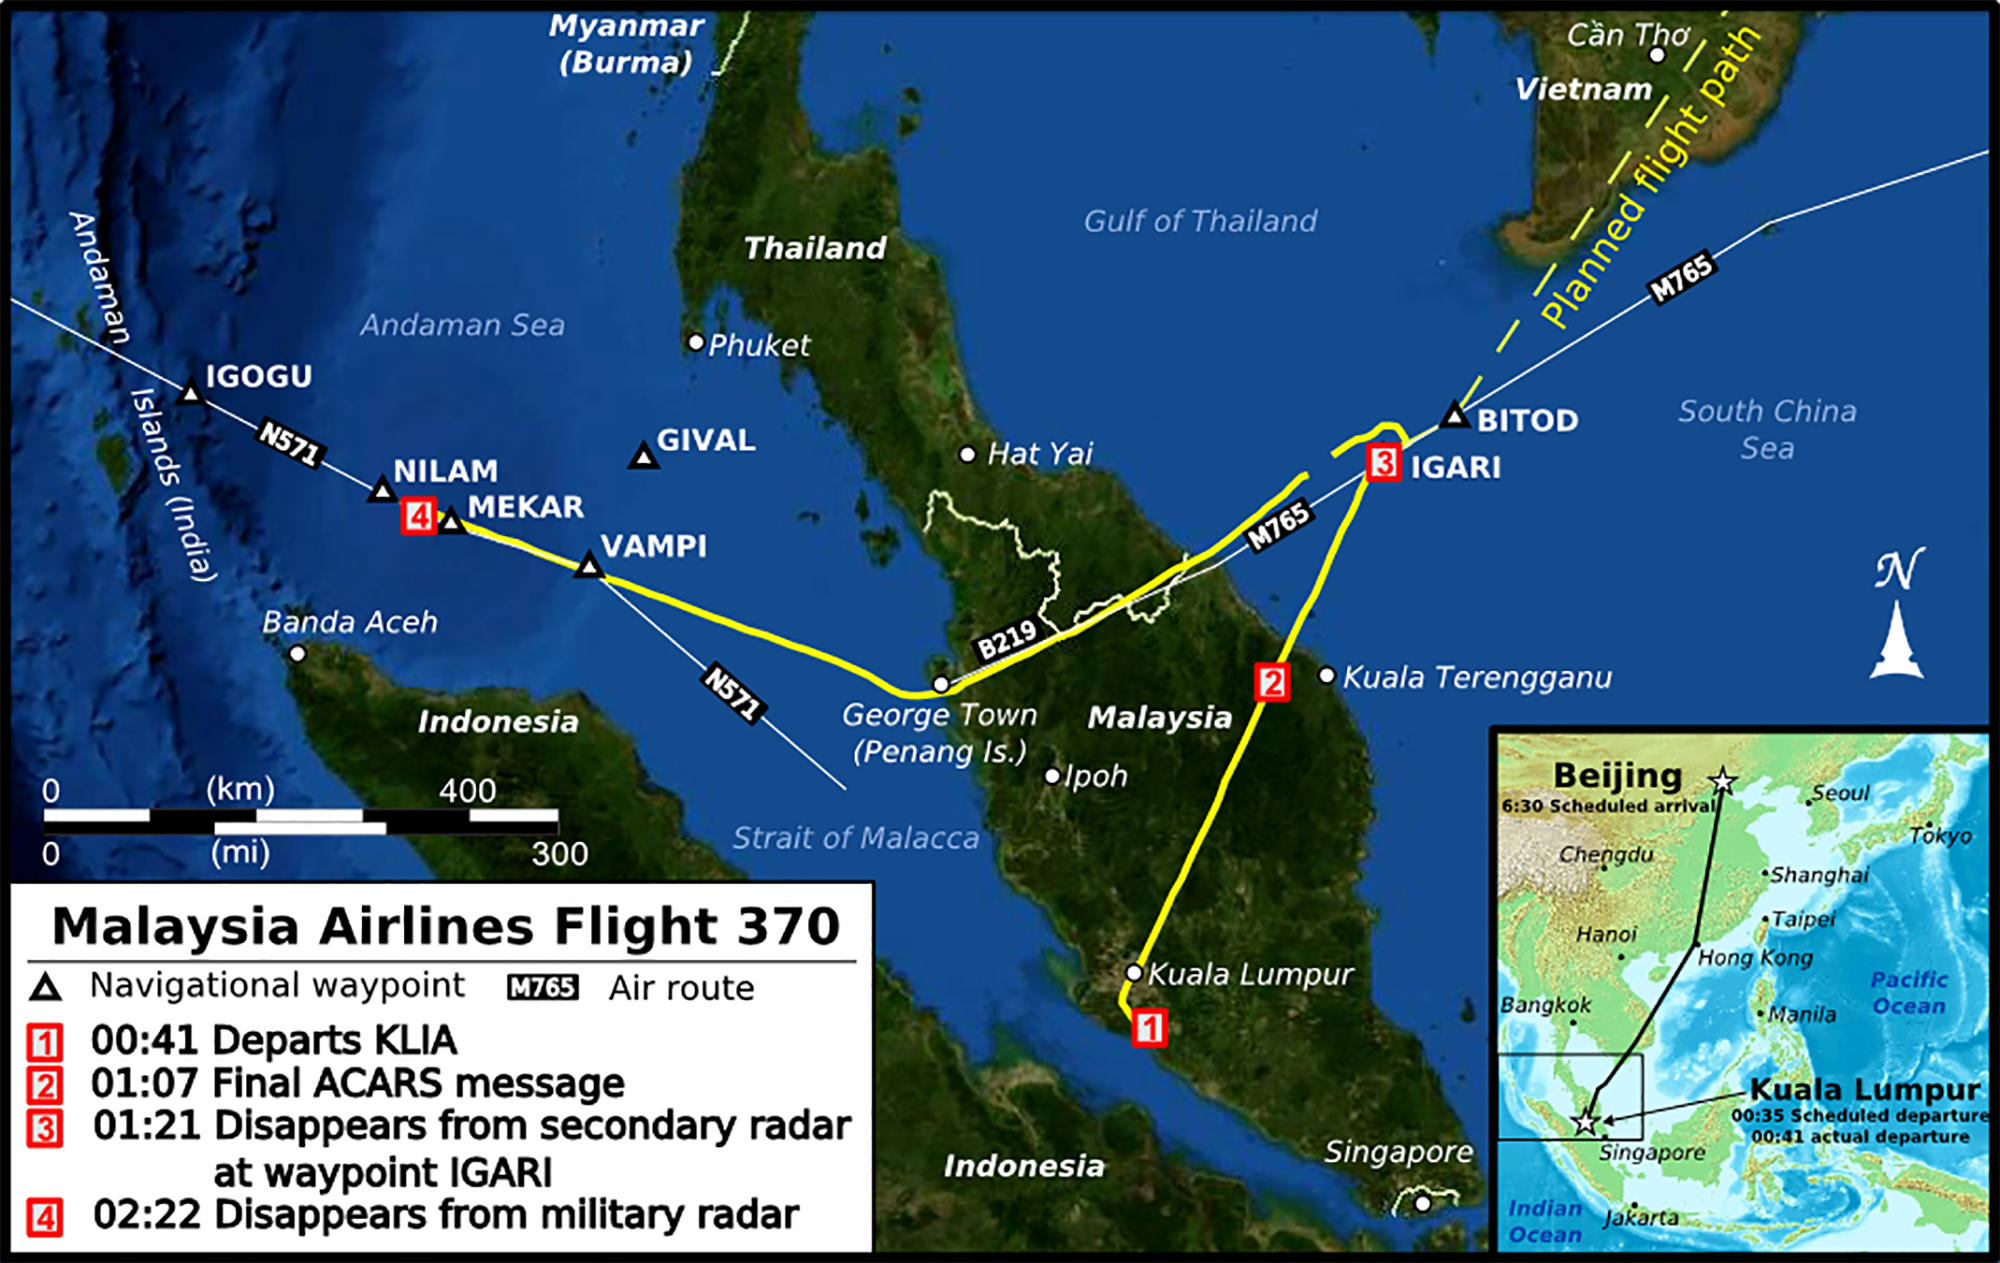 Malaysia Airlines Flight MH370 flight path